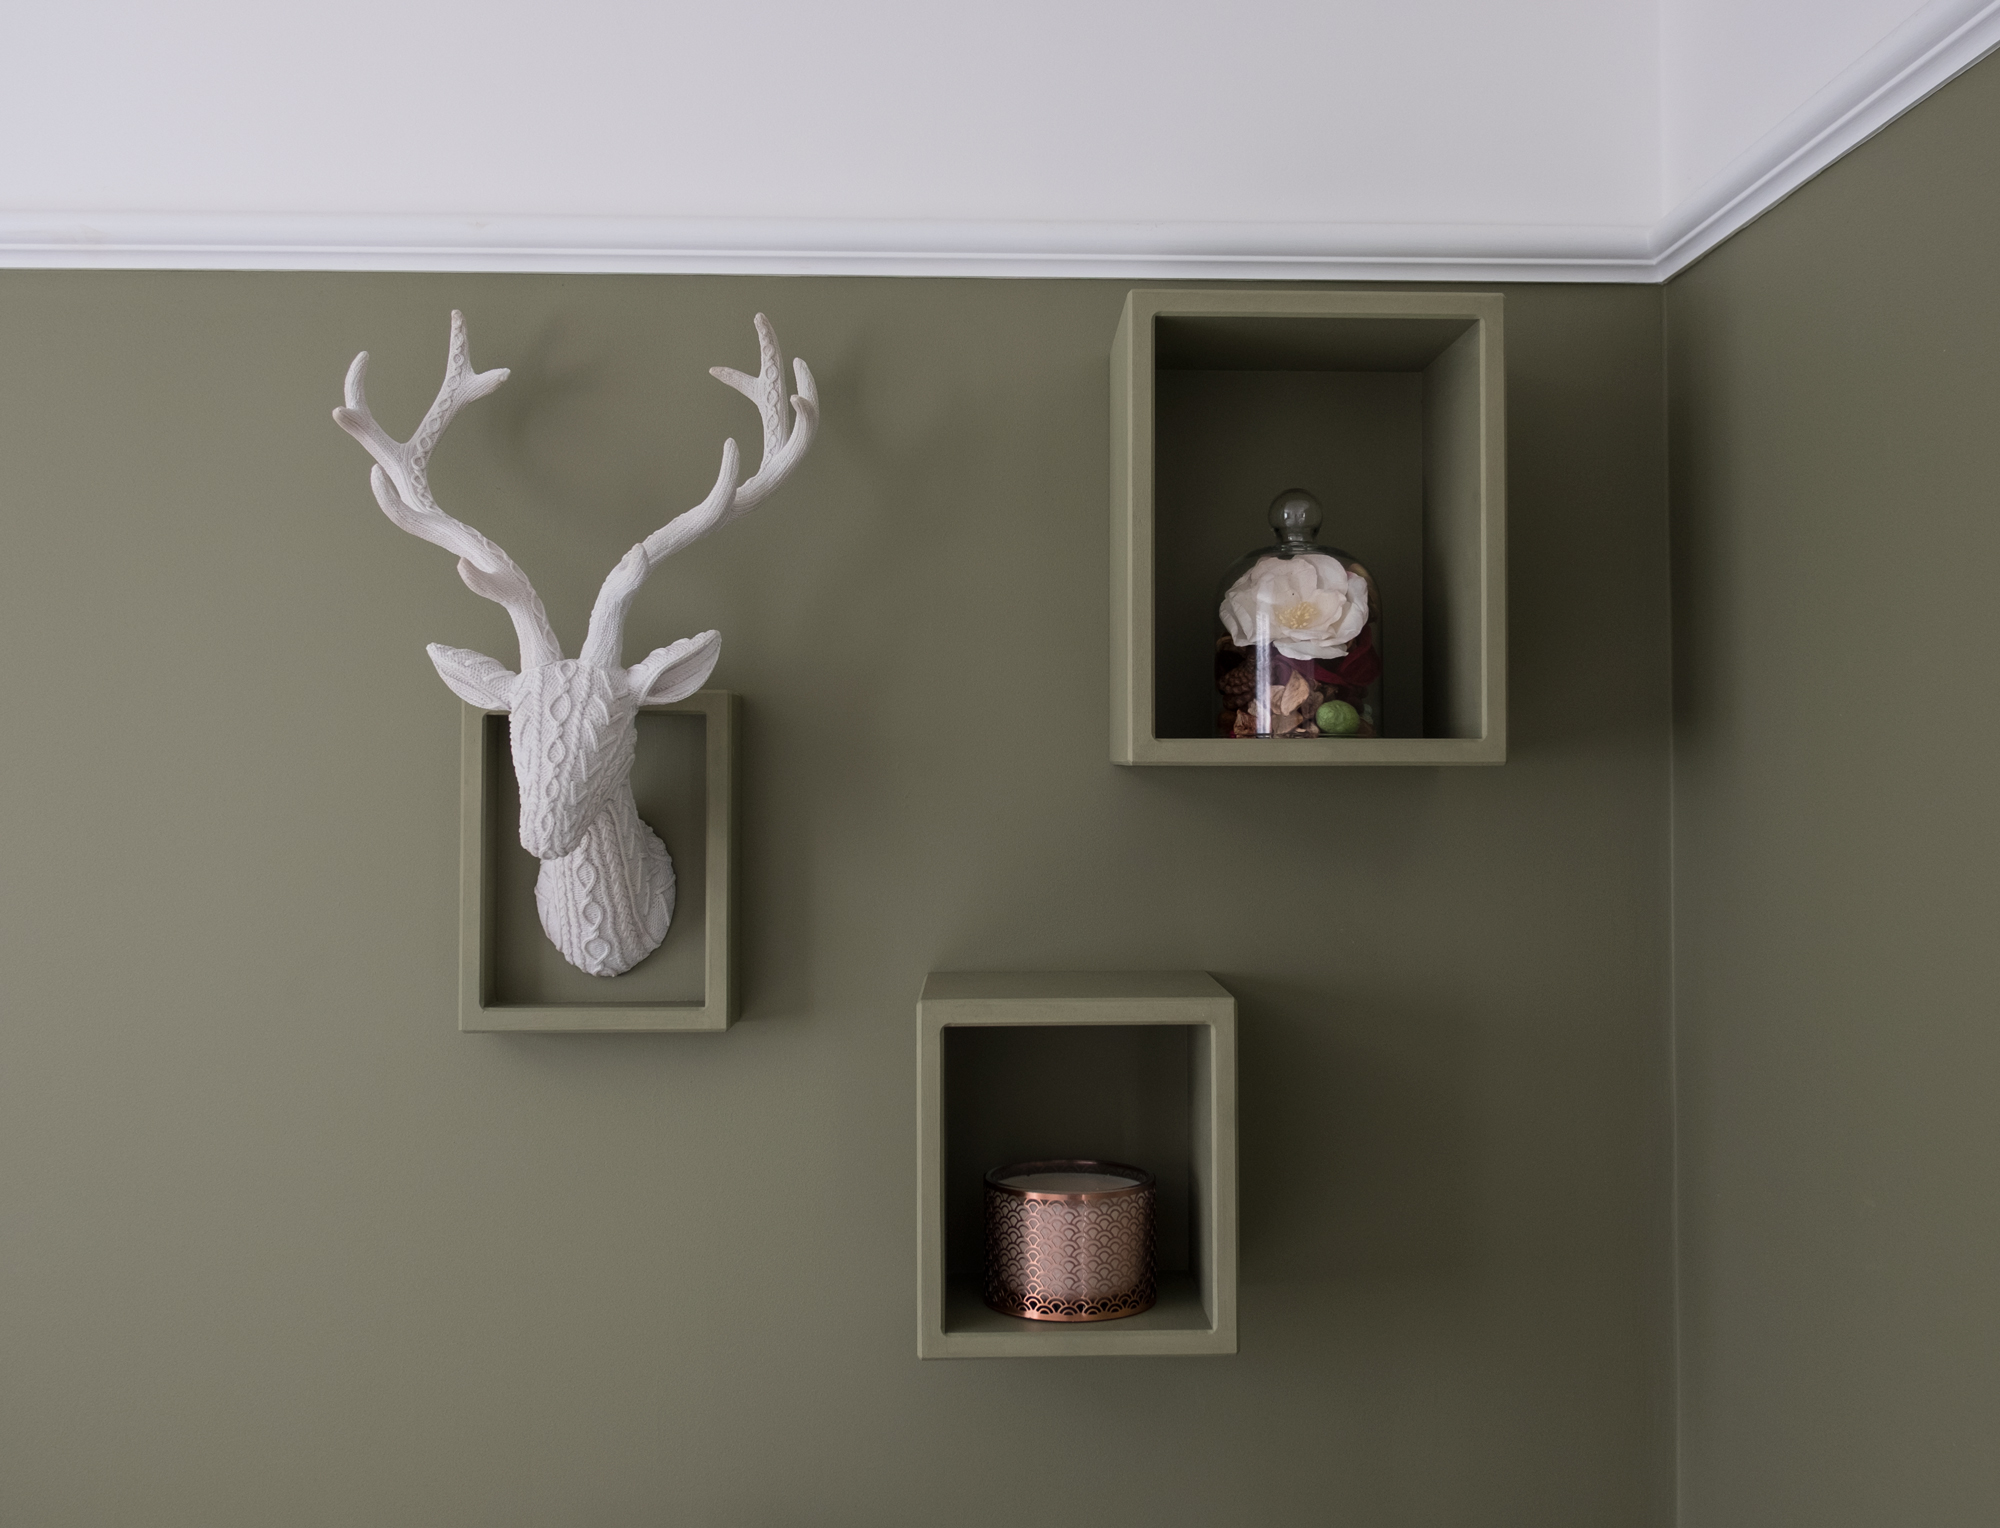 Green floating shelves on a green wall with a stags head and a plant inside them